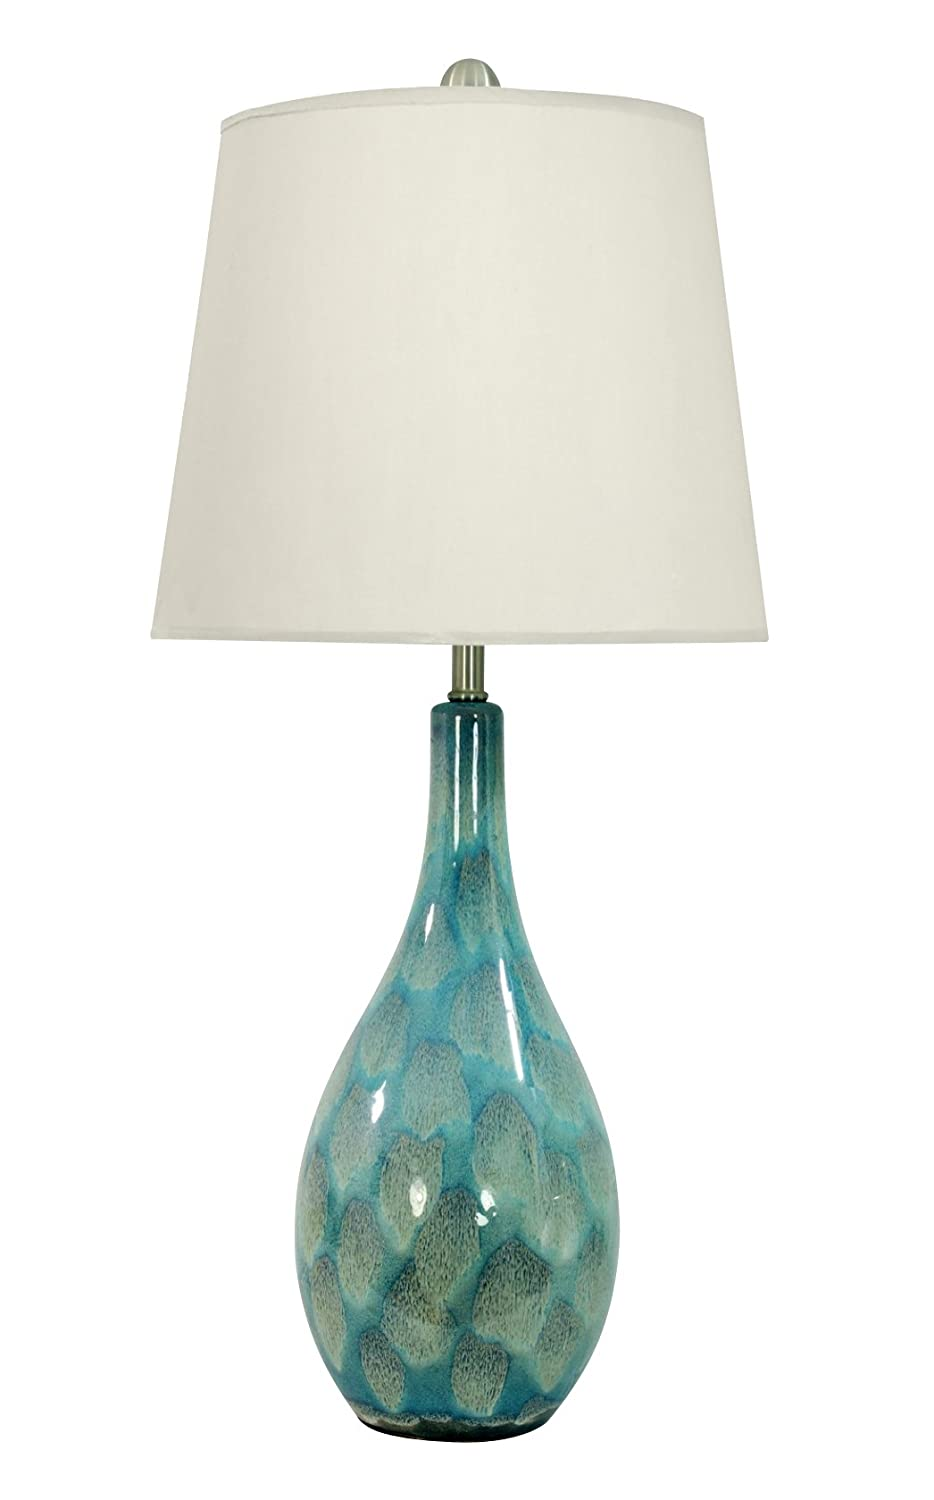 """Deco 79 95774 Ceramic Round Blue Table Lamp with White Shade /& Glaze Feather Pattern 8/"""" x 32/"""""""